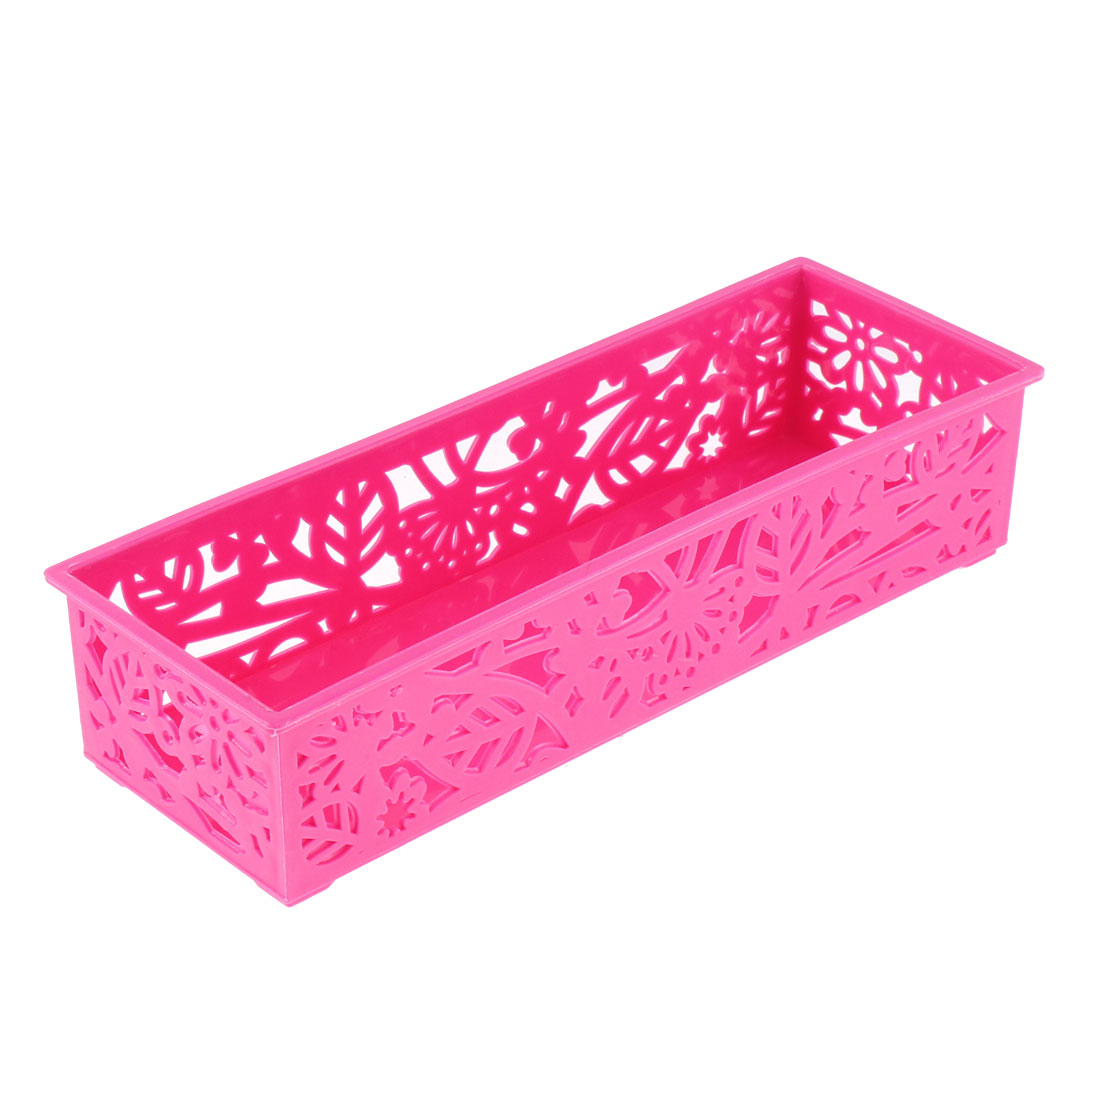 Home Plastic Hollow Out Flower Design Storage Basket 245mmx85mm White